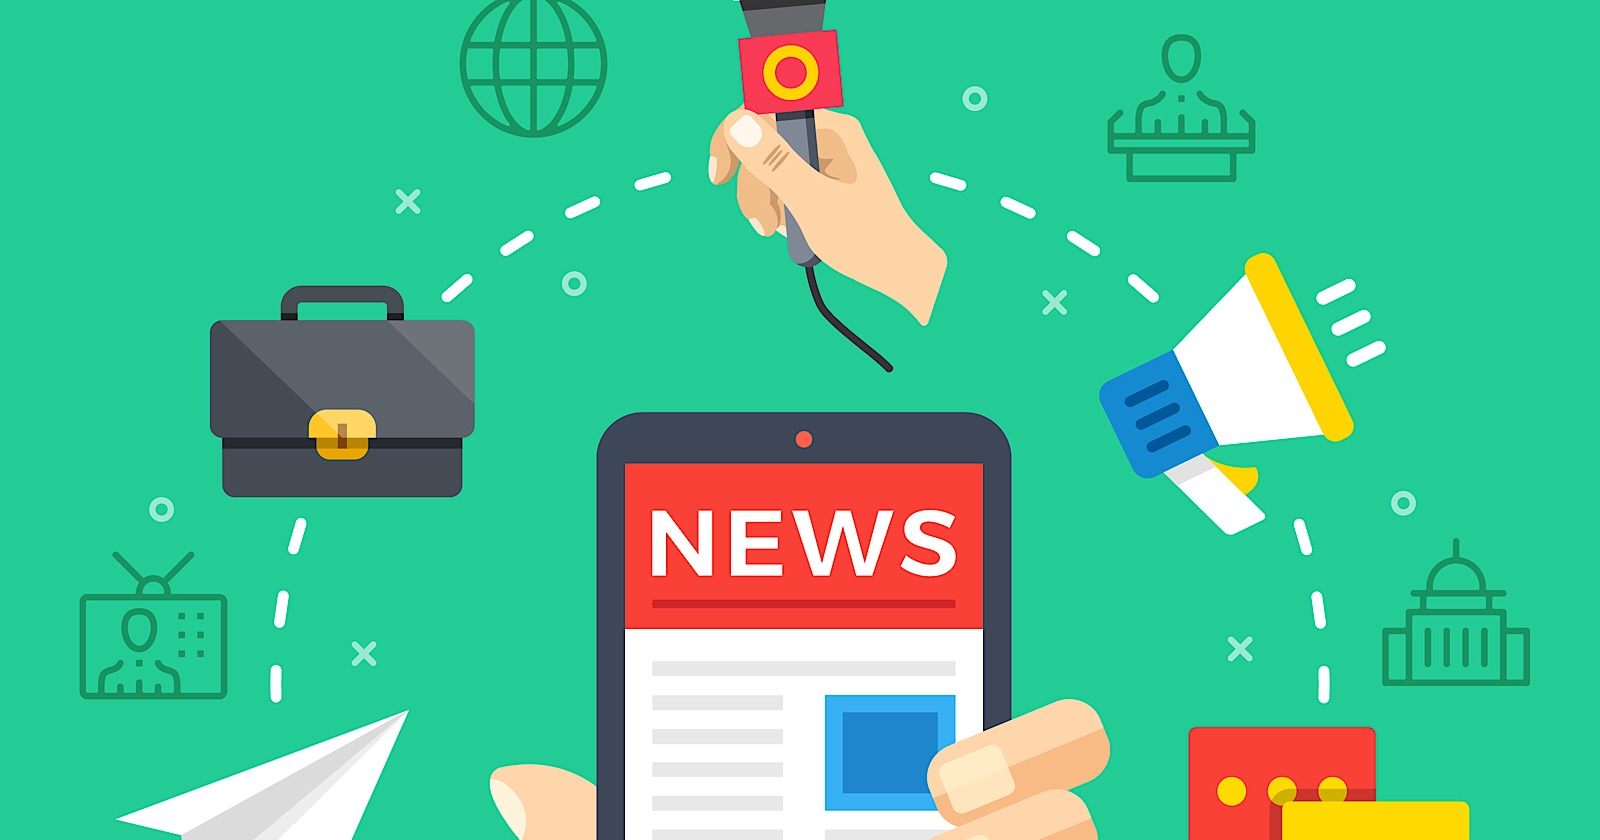 Google Updates Search Rankings to Favor Original News Reporting - Search Engine Journal